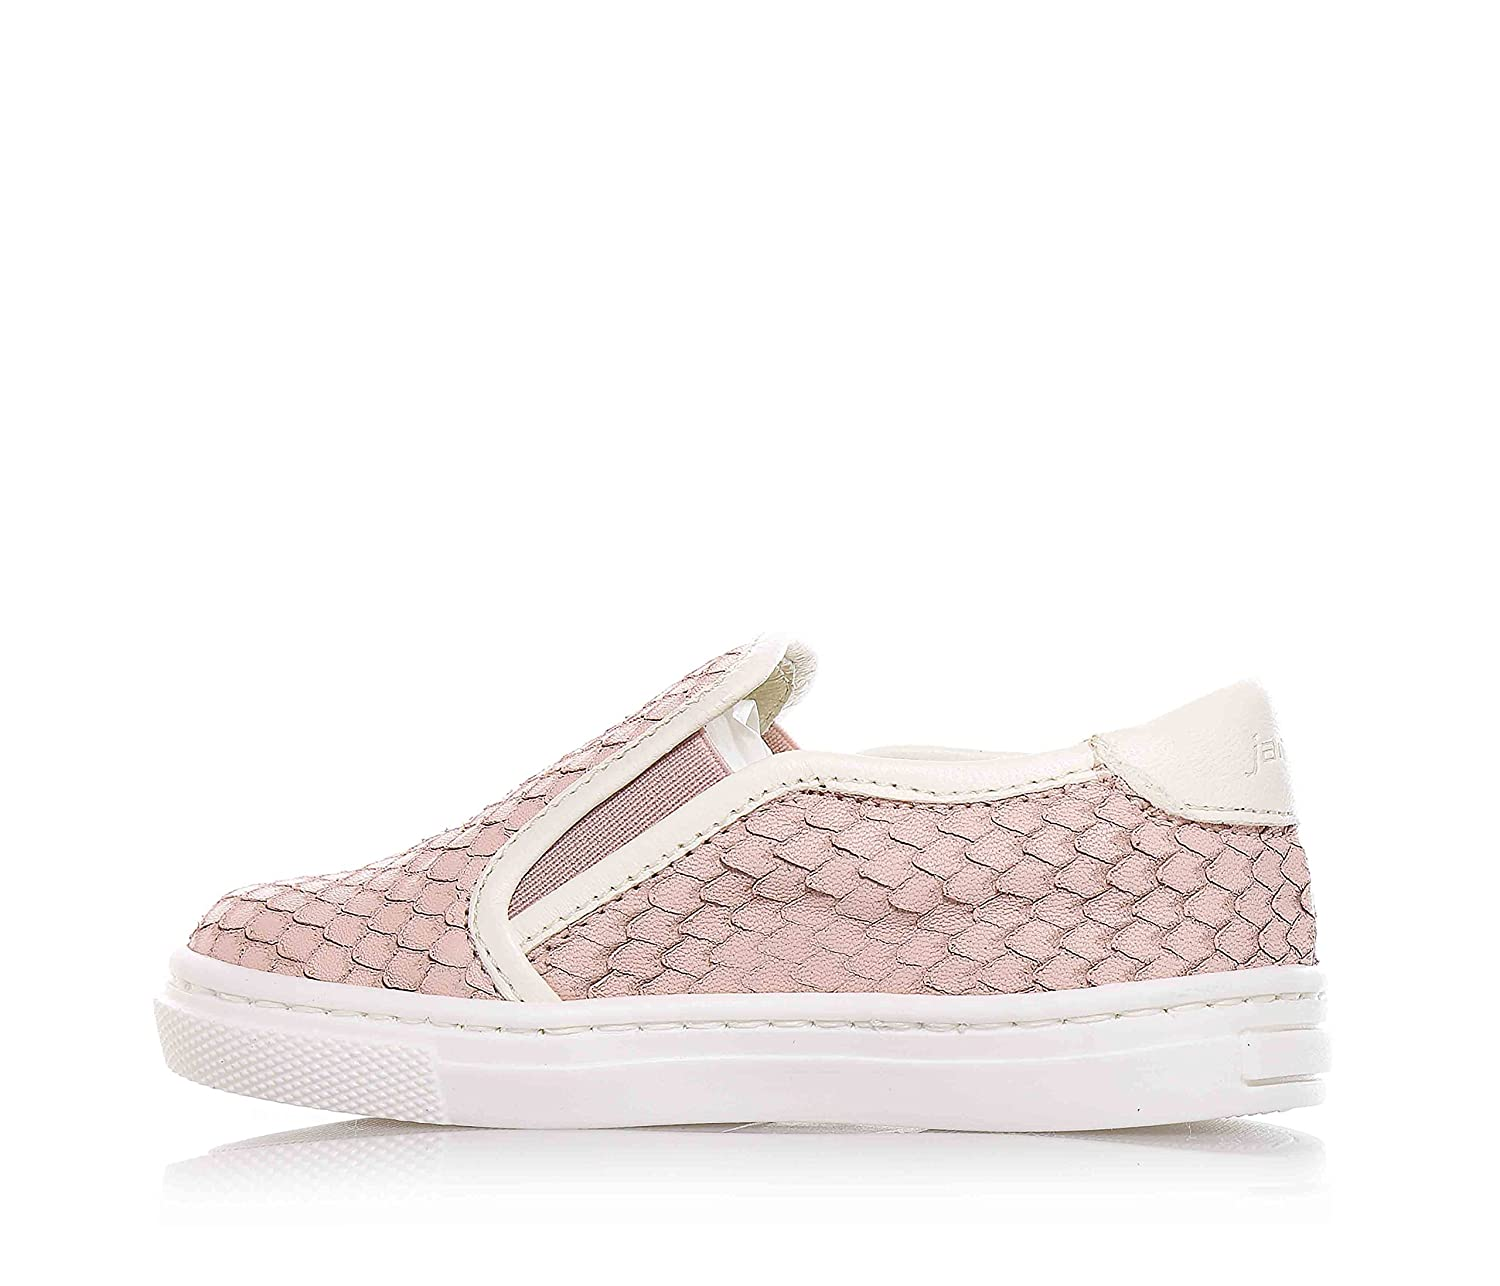 JARRETT - Rose slip on made of leather, characterized by the use of high  quality materials and refined hides, with lateral elastic inserts, rear logo,  Child ...